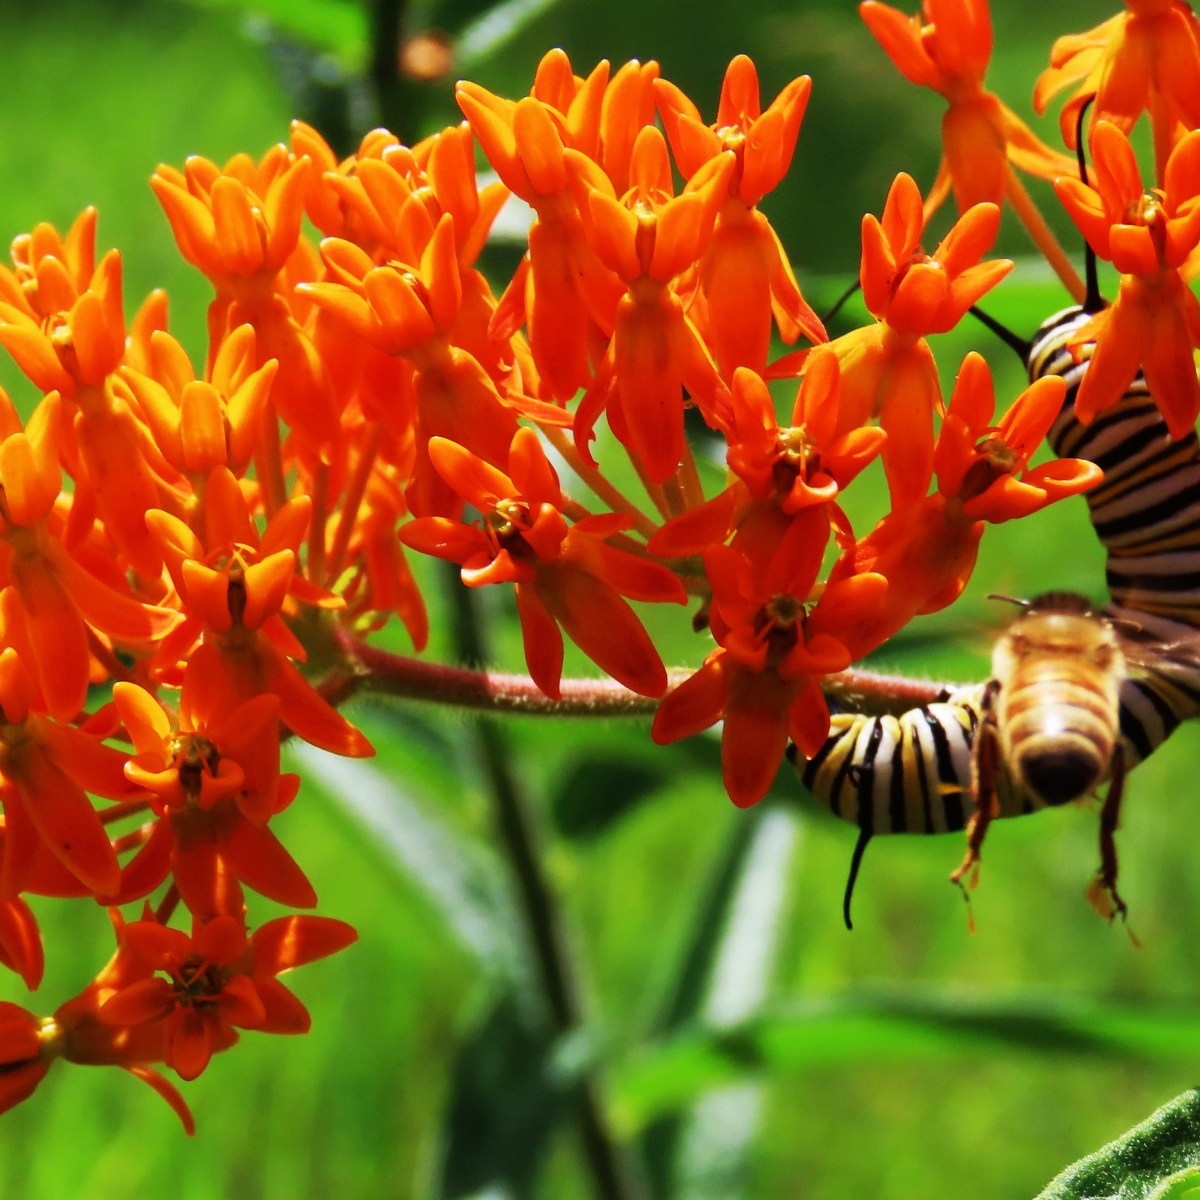 A caterpillar on a butterfly weed plant while a bee flies nearby